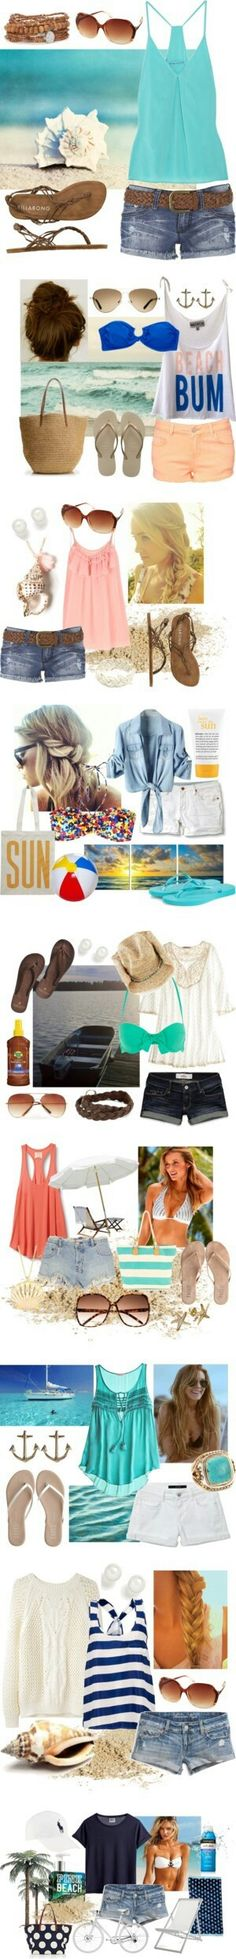 Beach Style: Dreaming of Summer.all the shorts are rather short, but cute outfit ideas! Summer Wear, Spring Summer Fashion, Summer Outfits, Summer Clothes, Beach Outfits, Spring Break, Beach Clothes, Summer Time, Summer Days